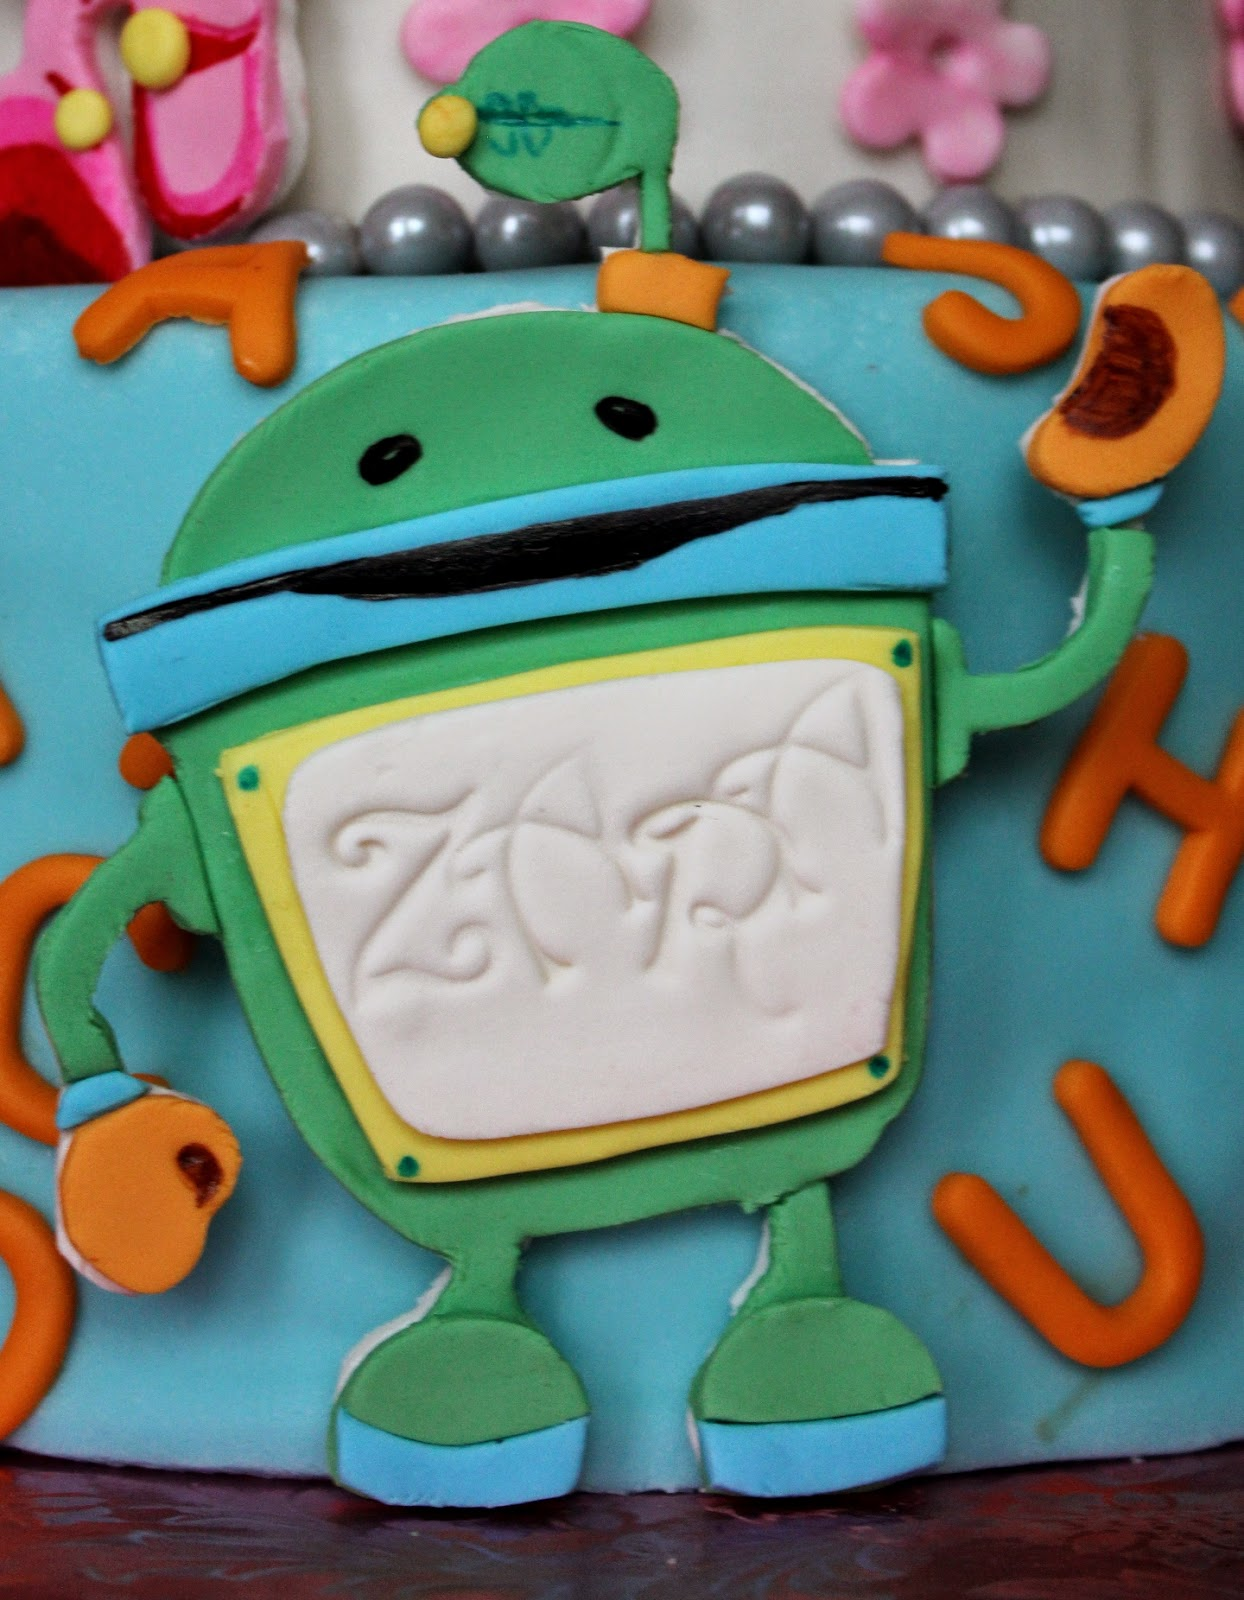 You Can Find The Team Umizoomi Toppers On My Etsy Store For Purchase Listing 217164680 2d Fondant Birthday Cake